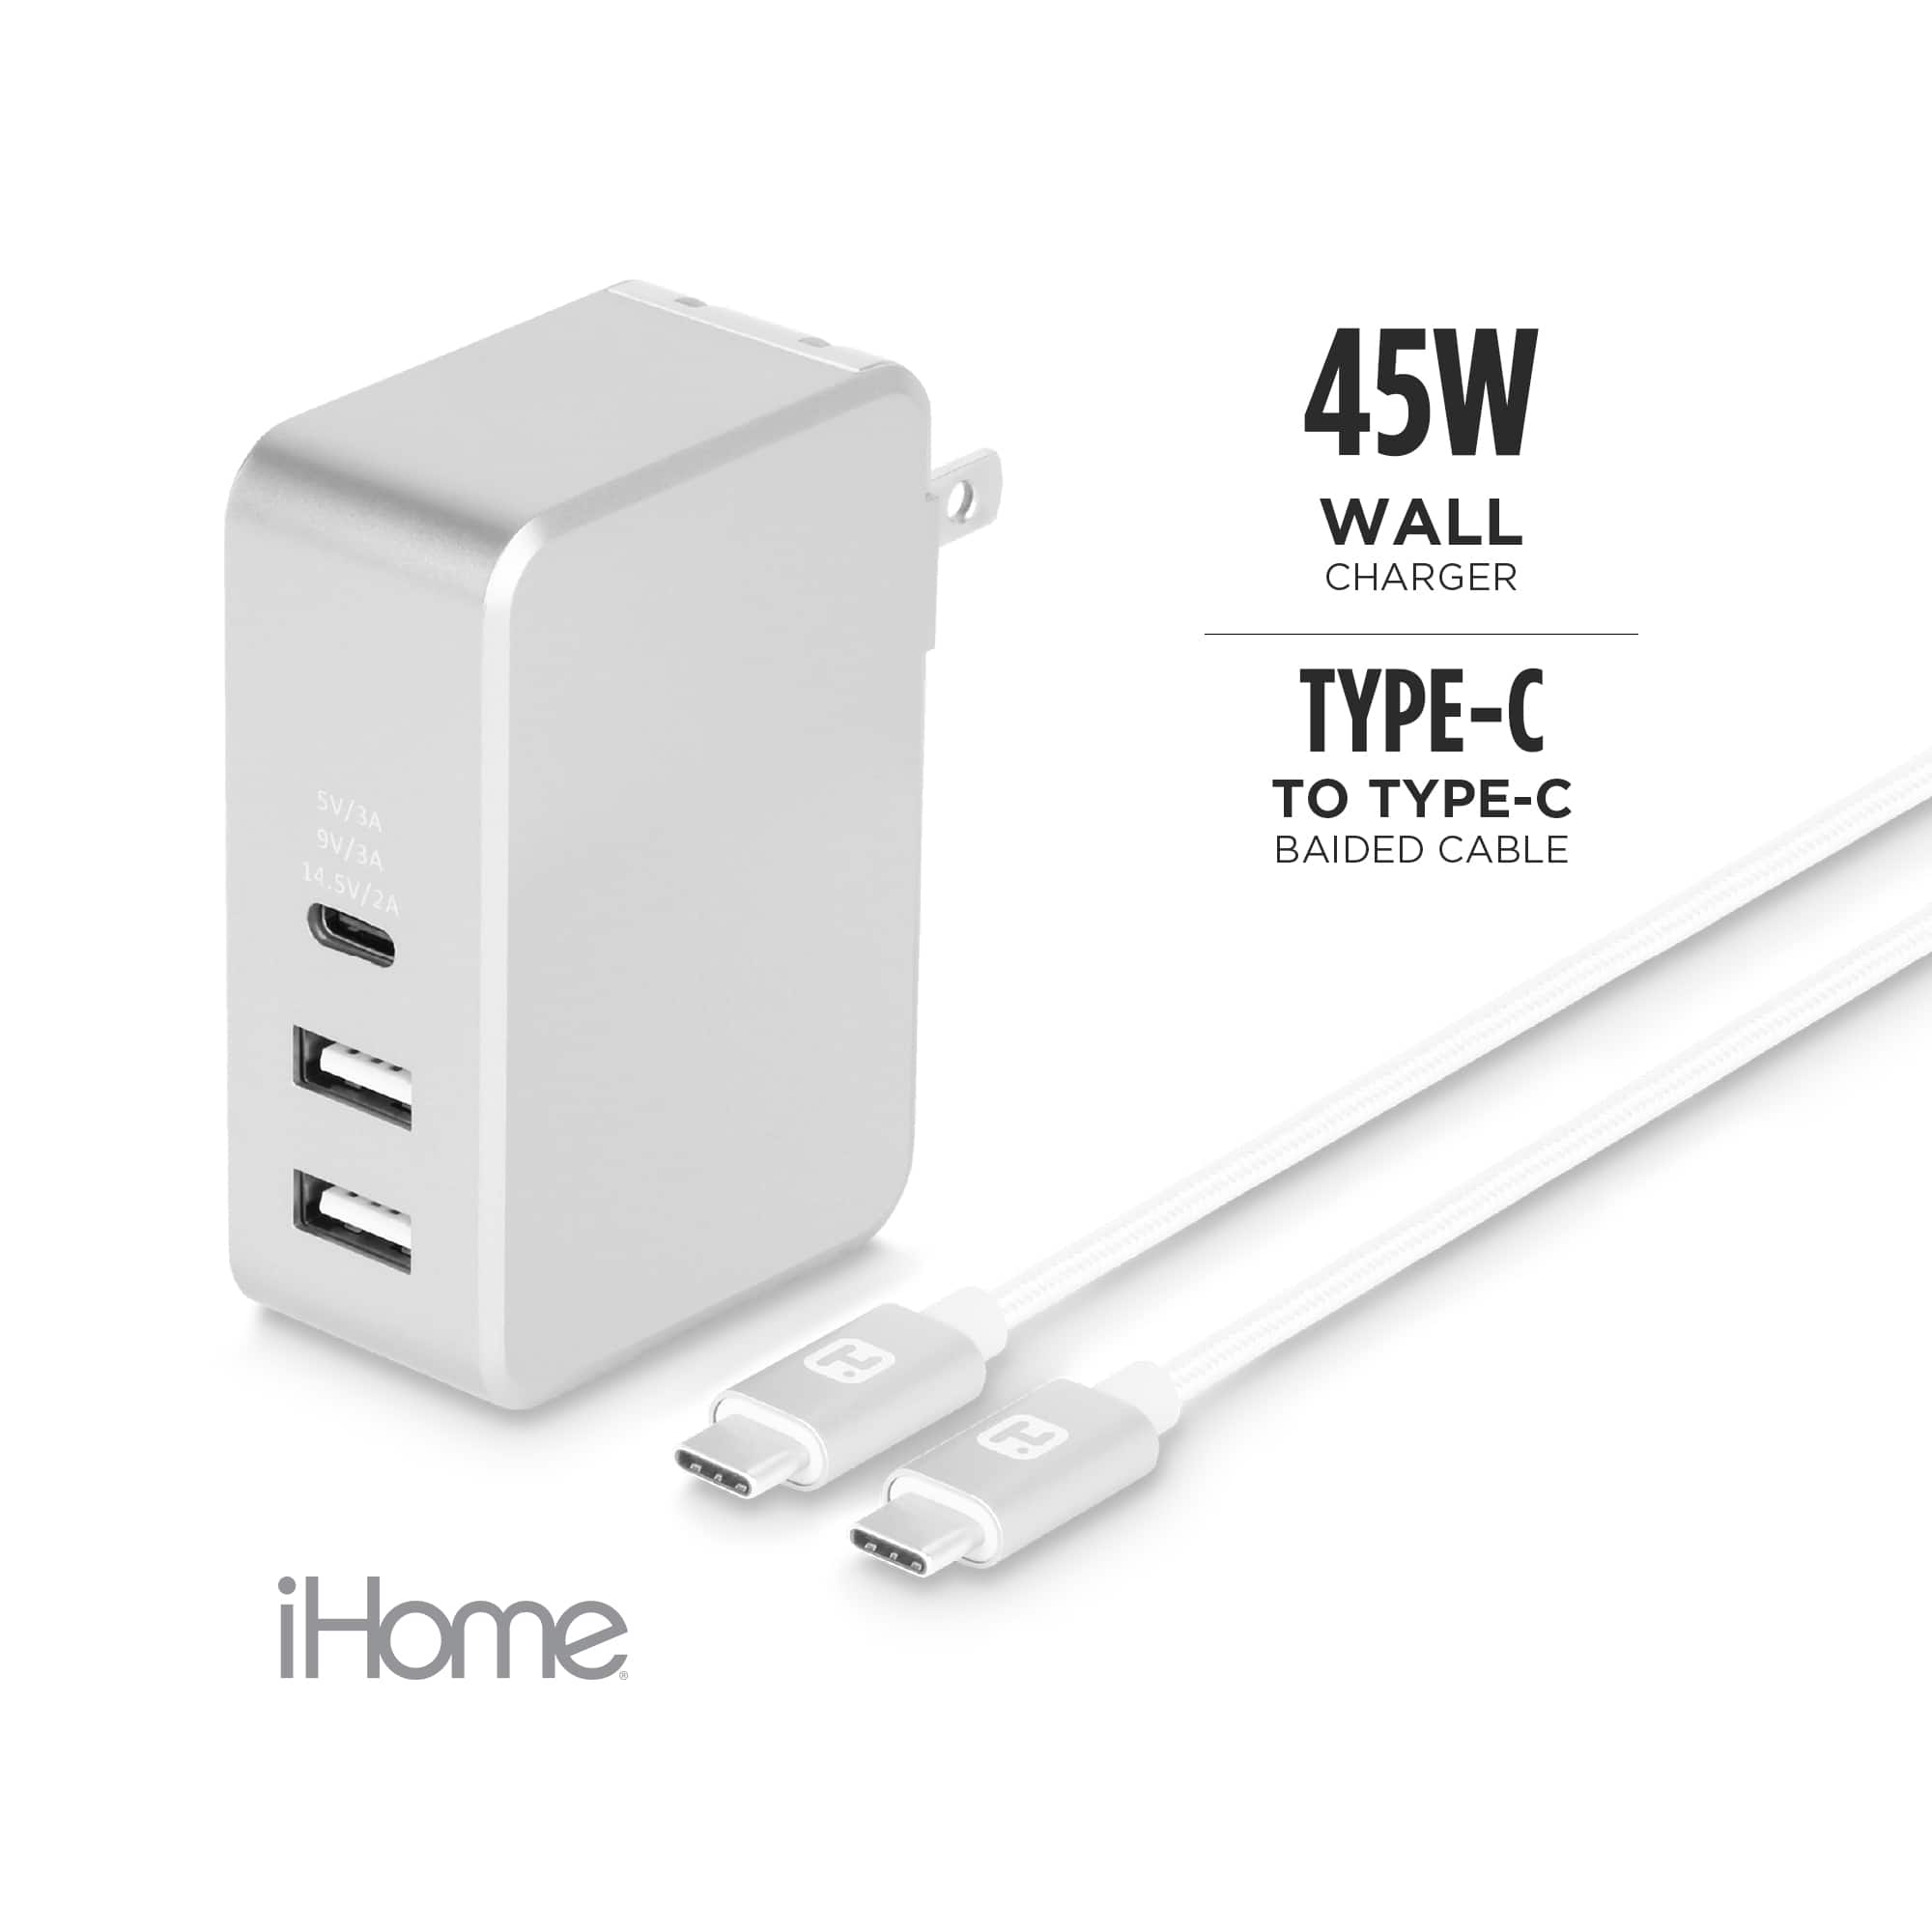 Walmart In Store YMMV iHome 45W USB-C Charger Bundle with PD, 1 USB-C, 2 USB-A ports $9